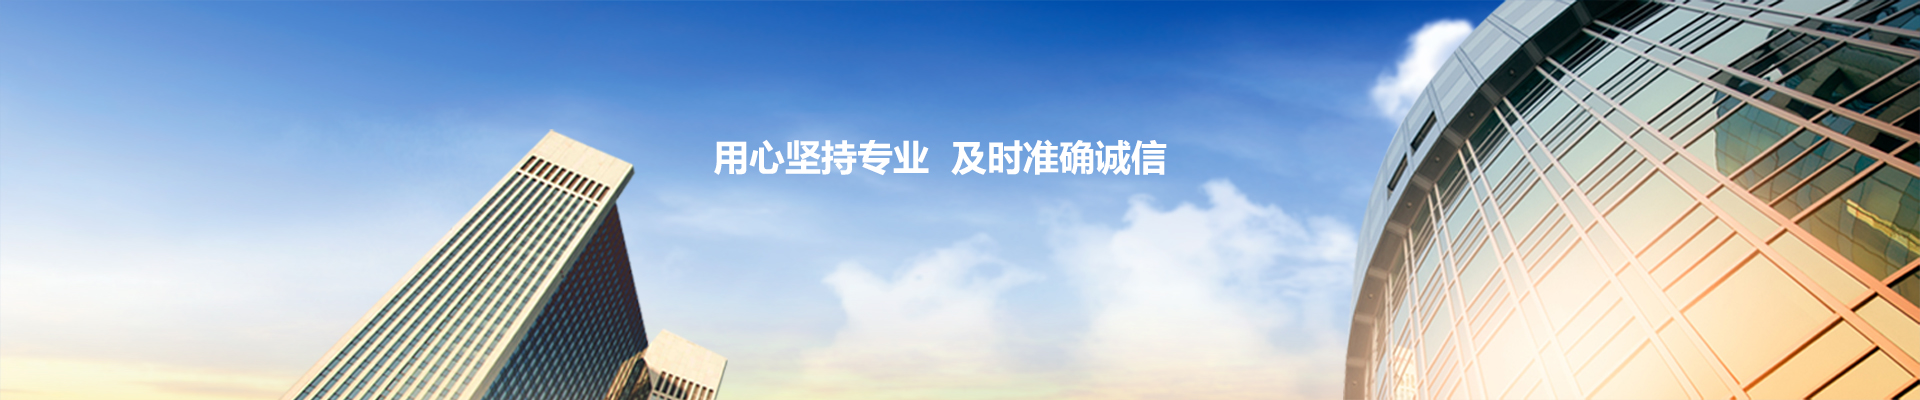 http://www.czliangrui.com/data/upload/202012/20201210090728_832.jpg